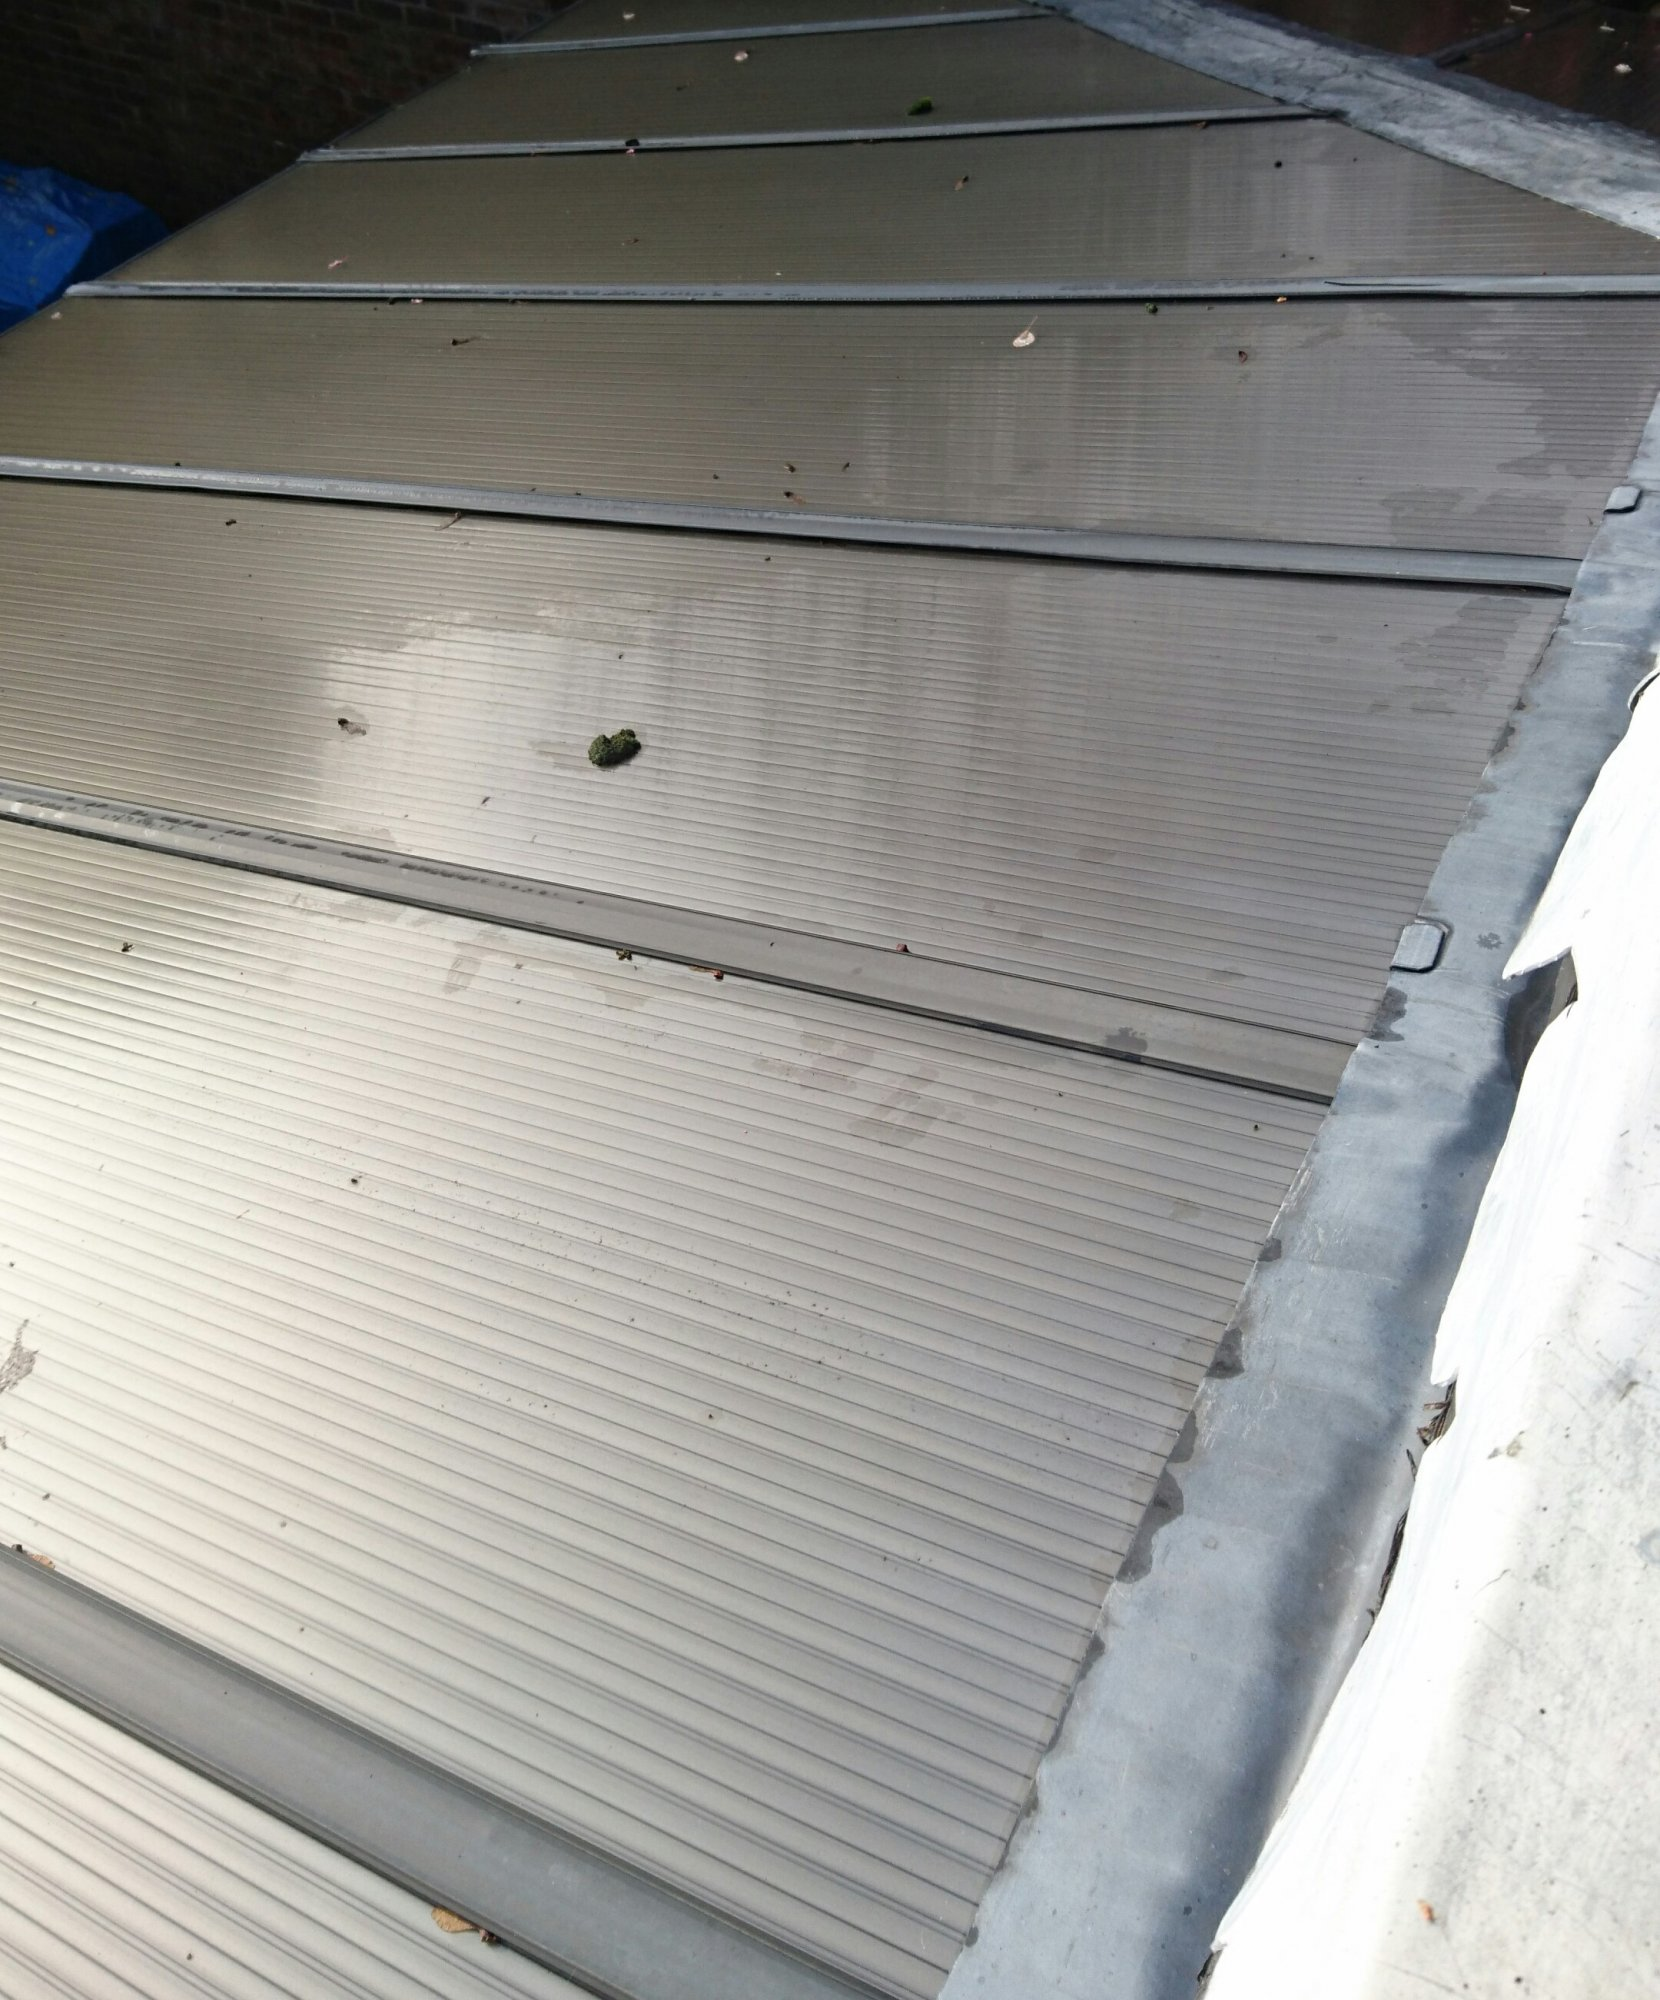 Conservatory Roof Crawling Board Ladder Diynot Forums